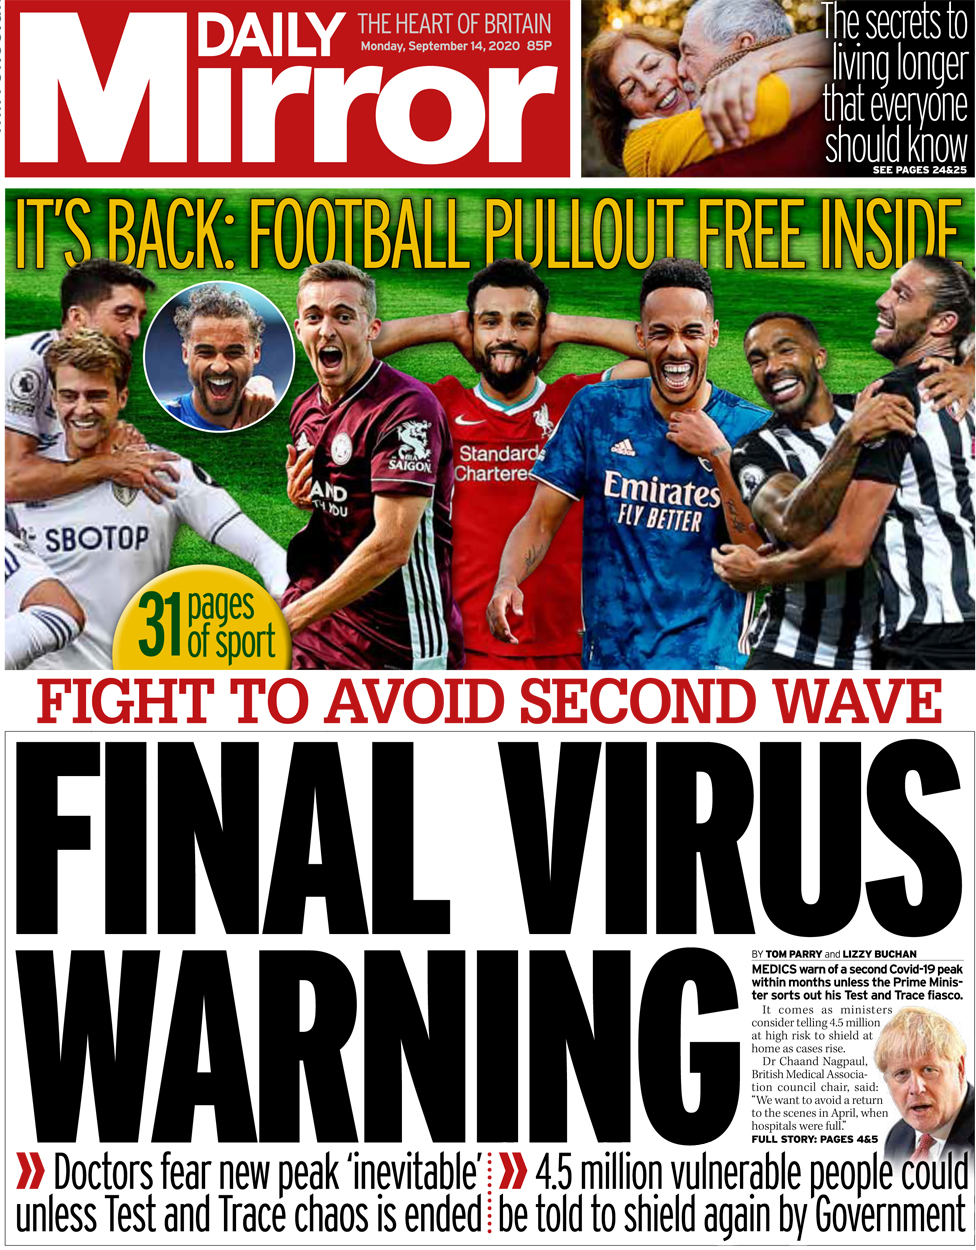 Daily Mirror front page 14 September